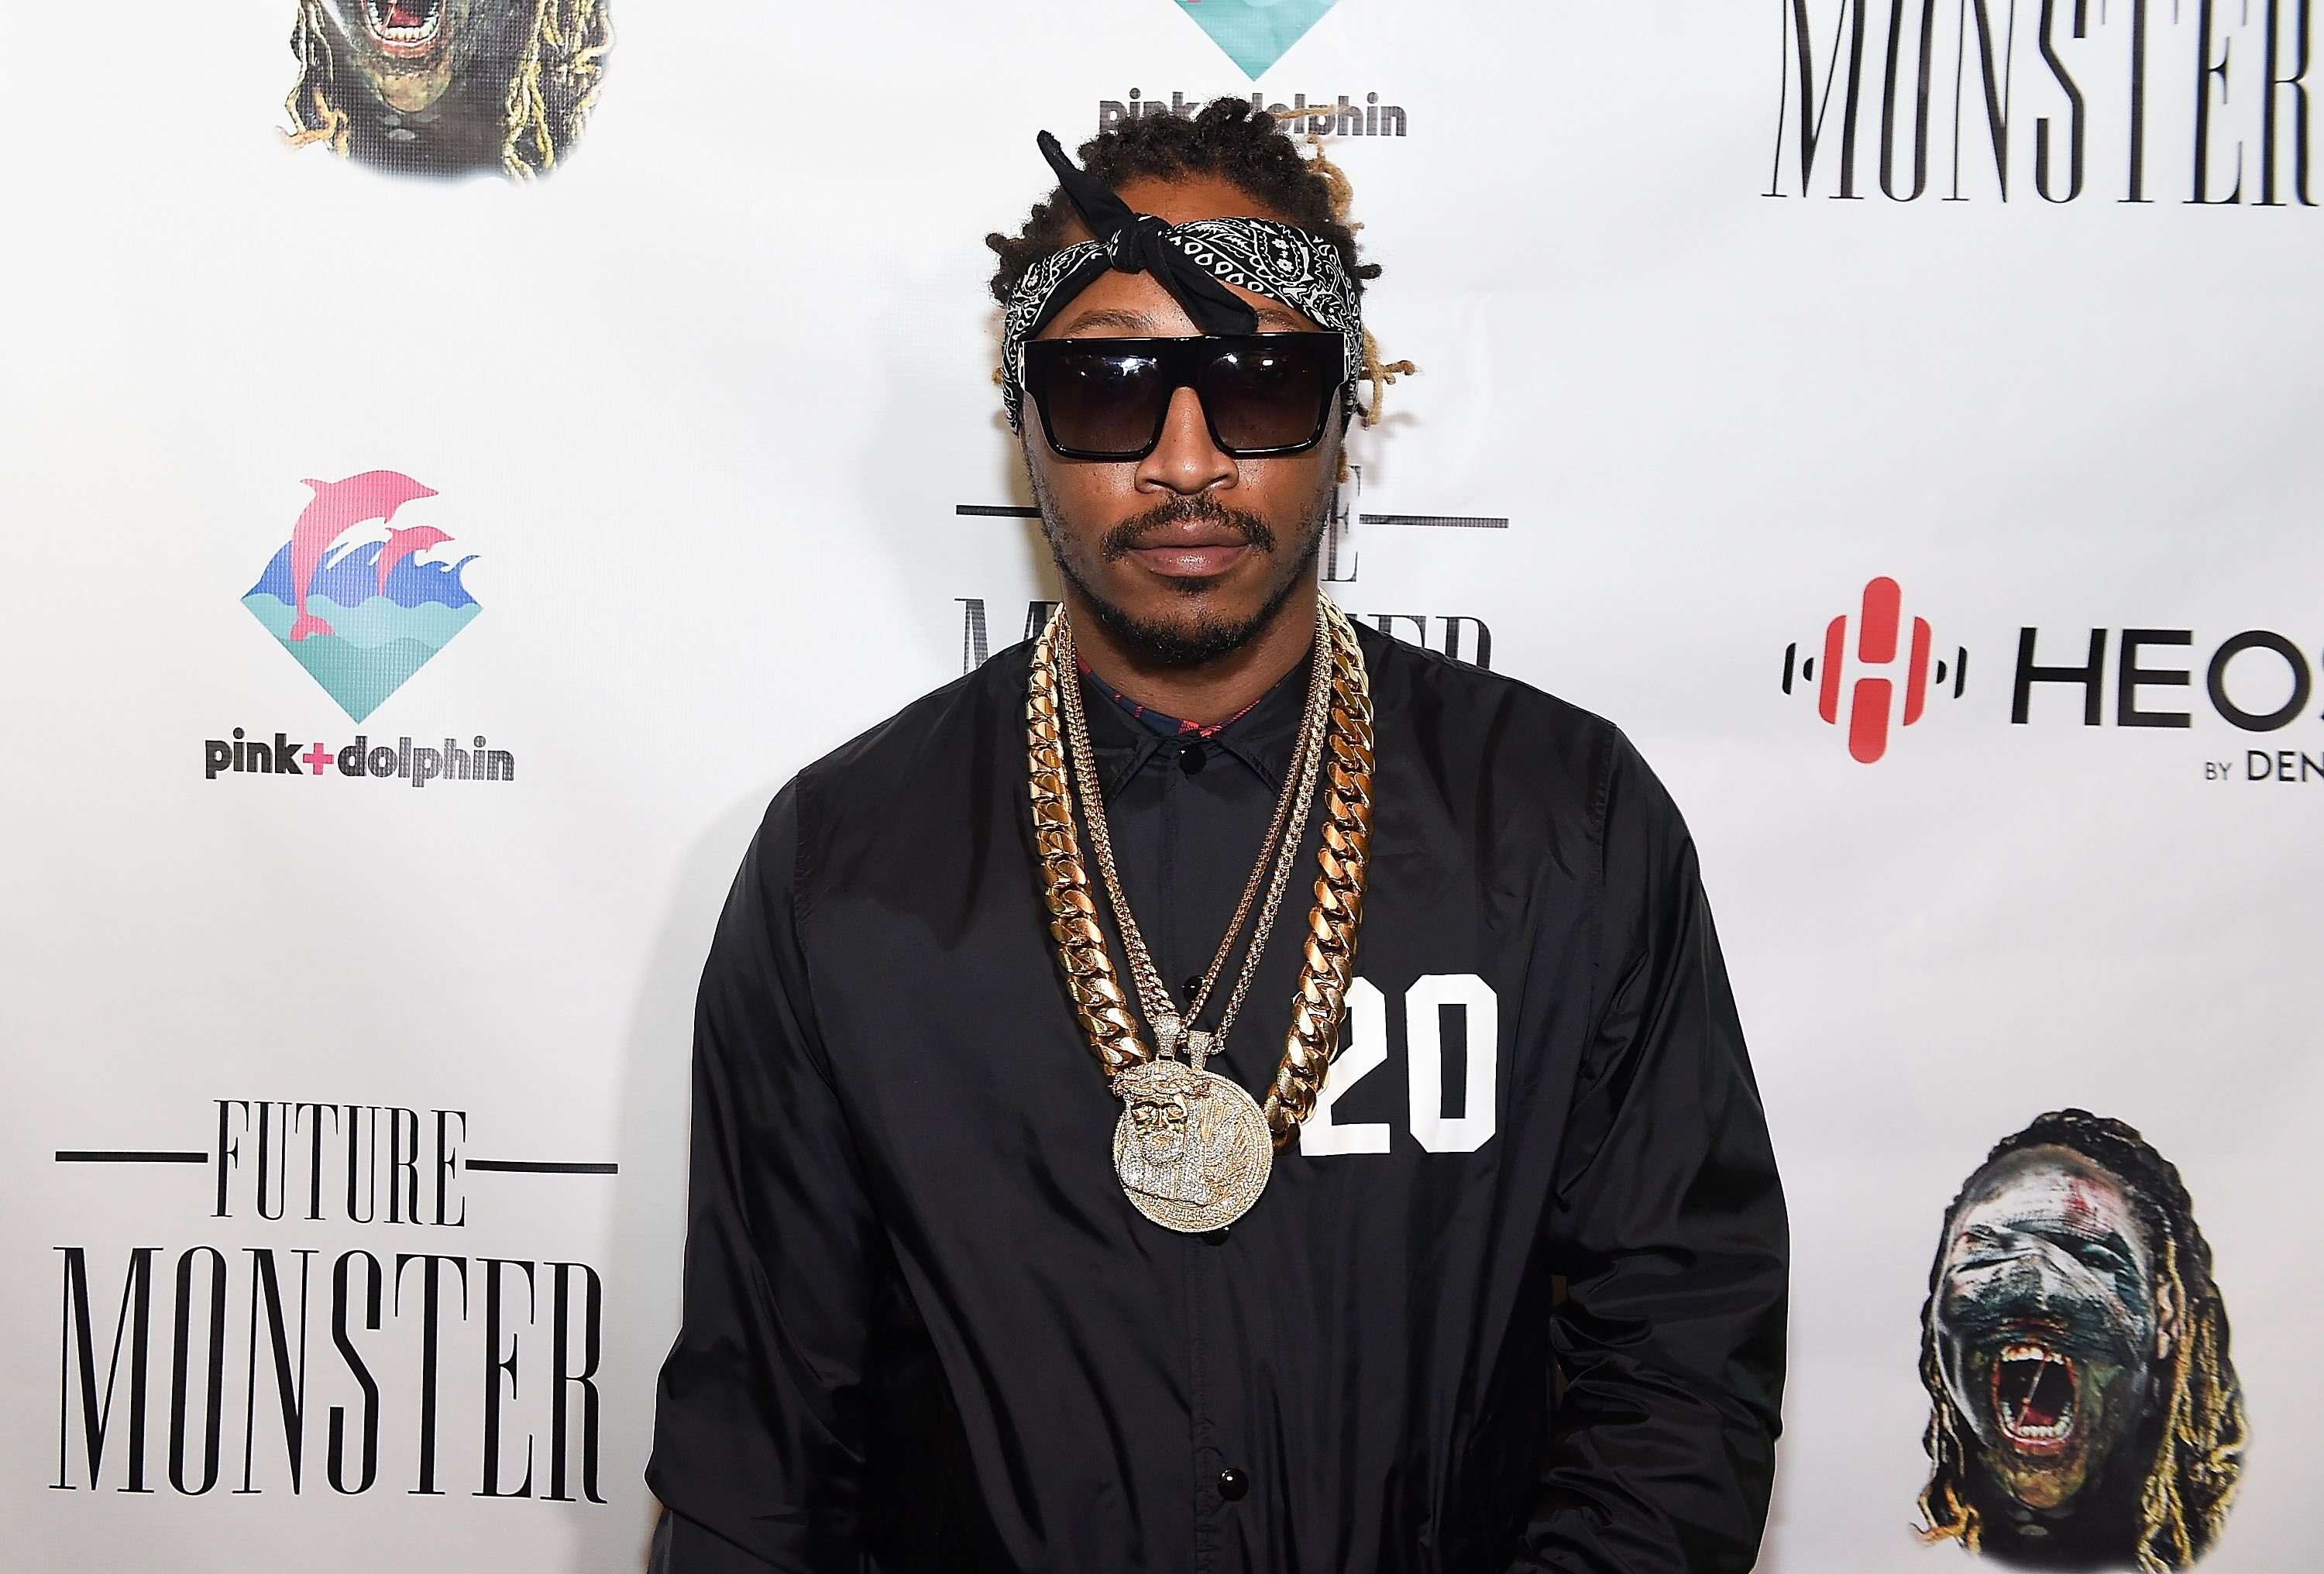 Future Hendrix attending a music event | Source: Getty Images/GlobalImagesUkraine